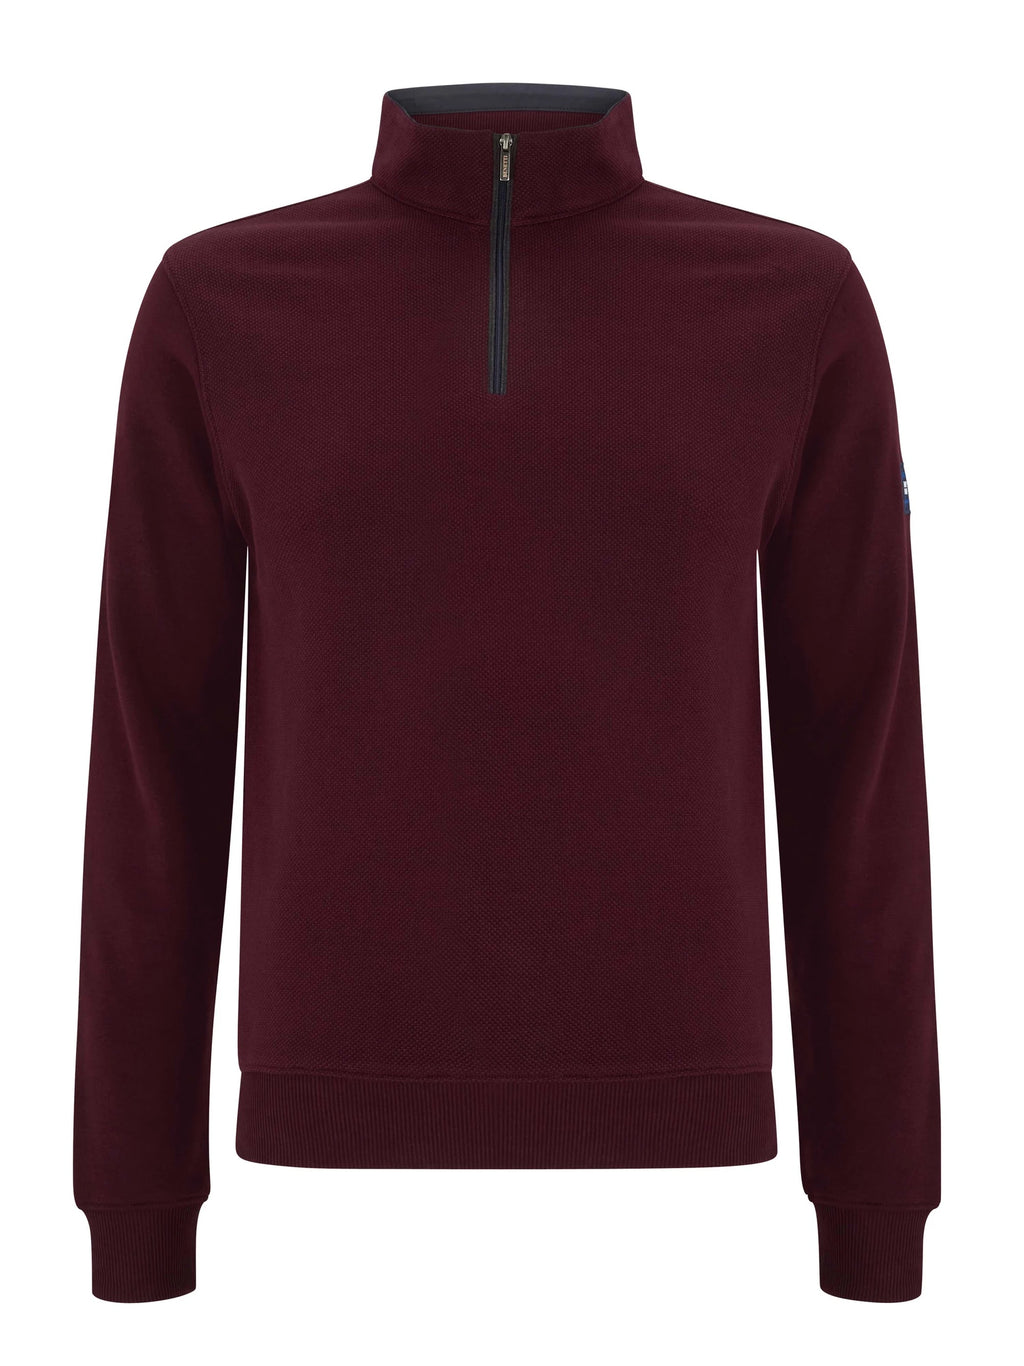 Benetti George Half Zip - Burgundy - jjdonnelly